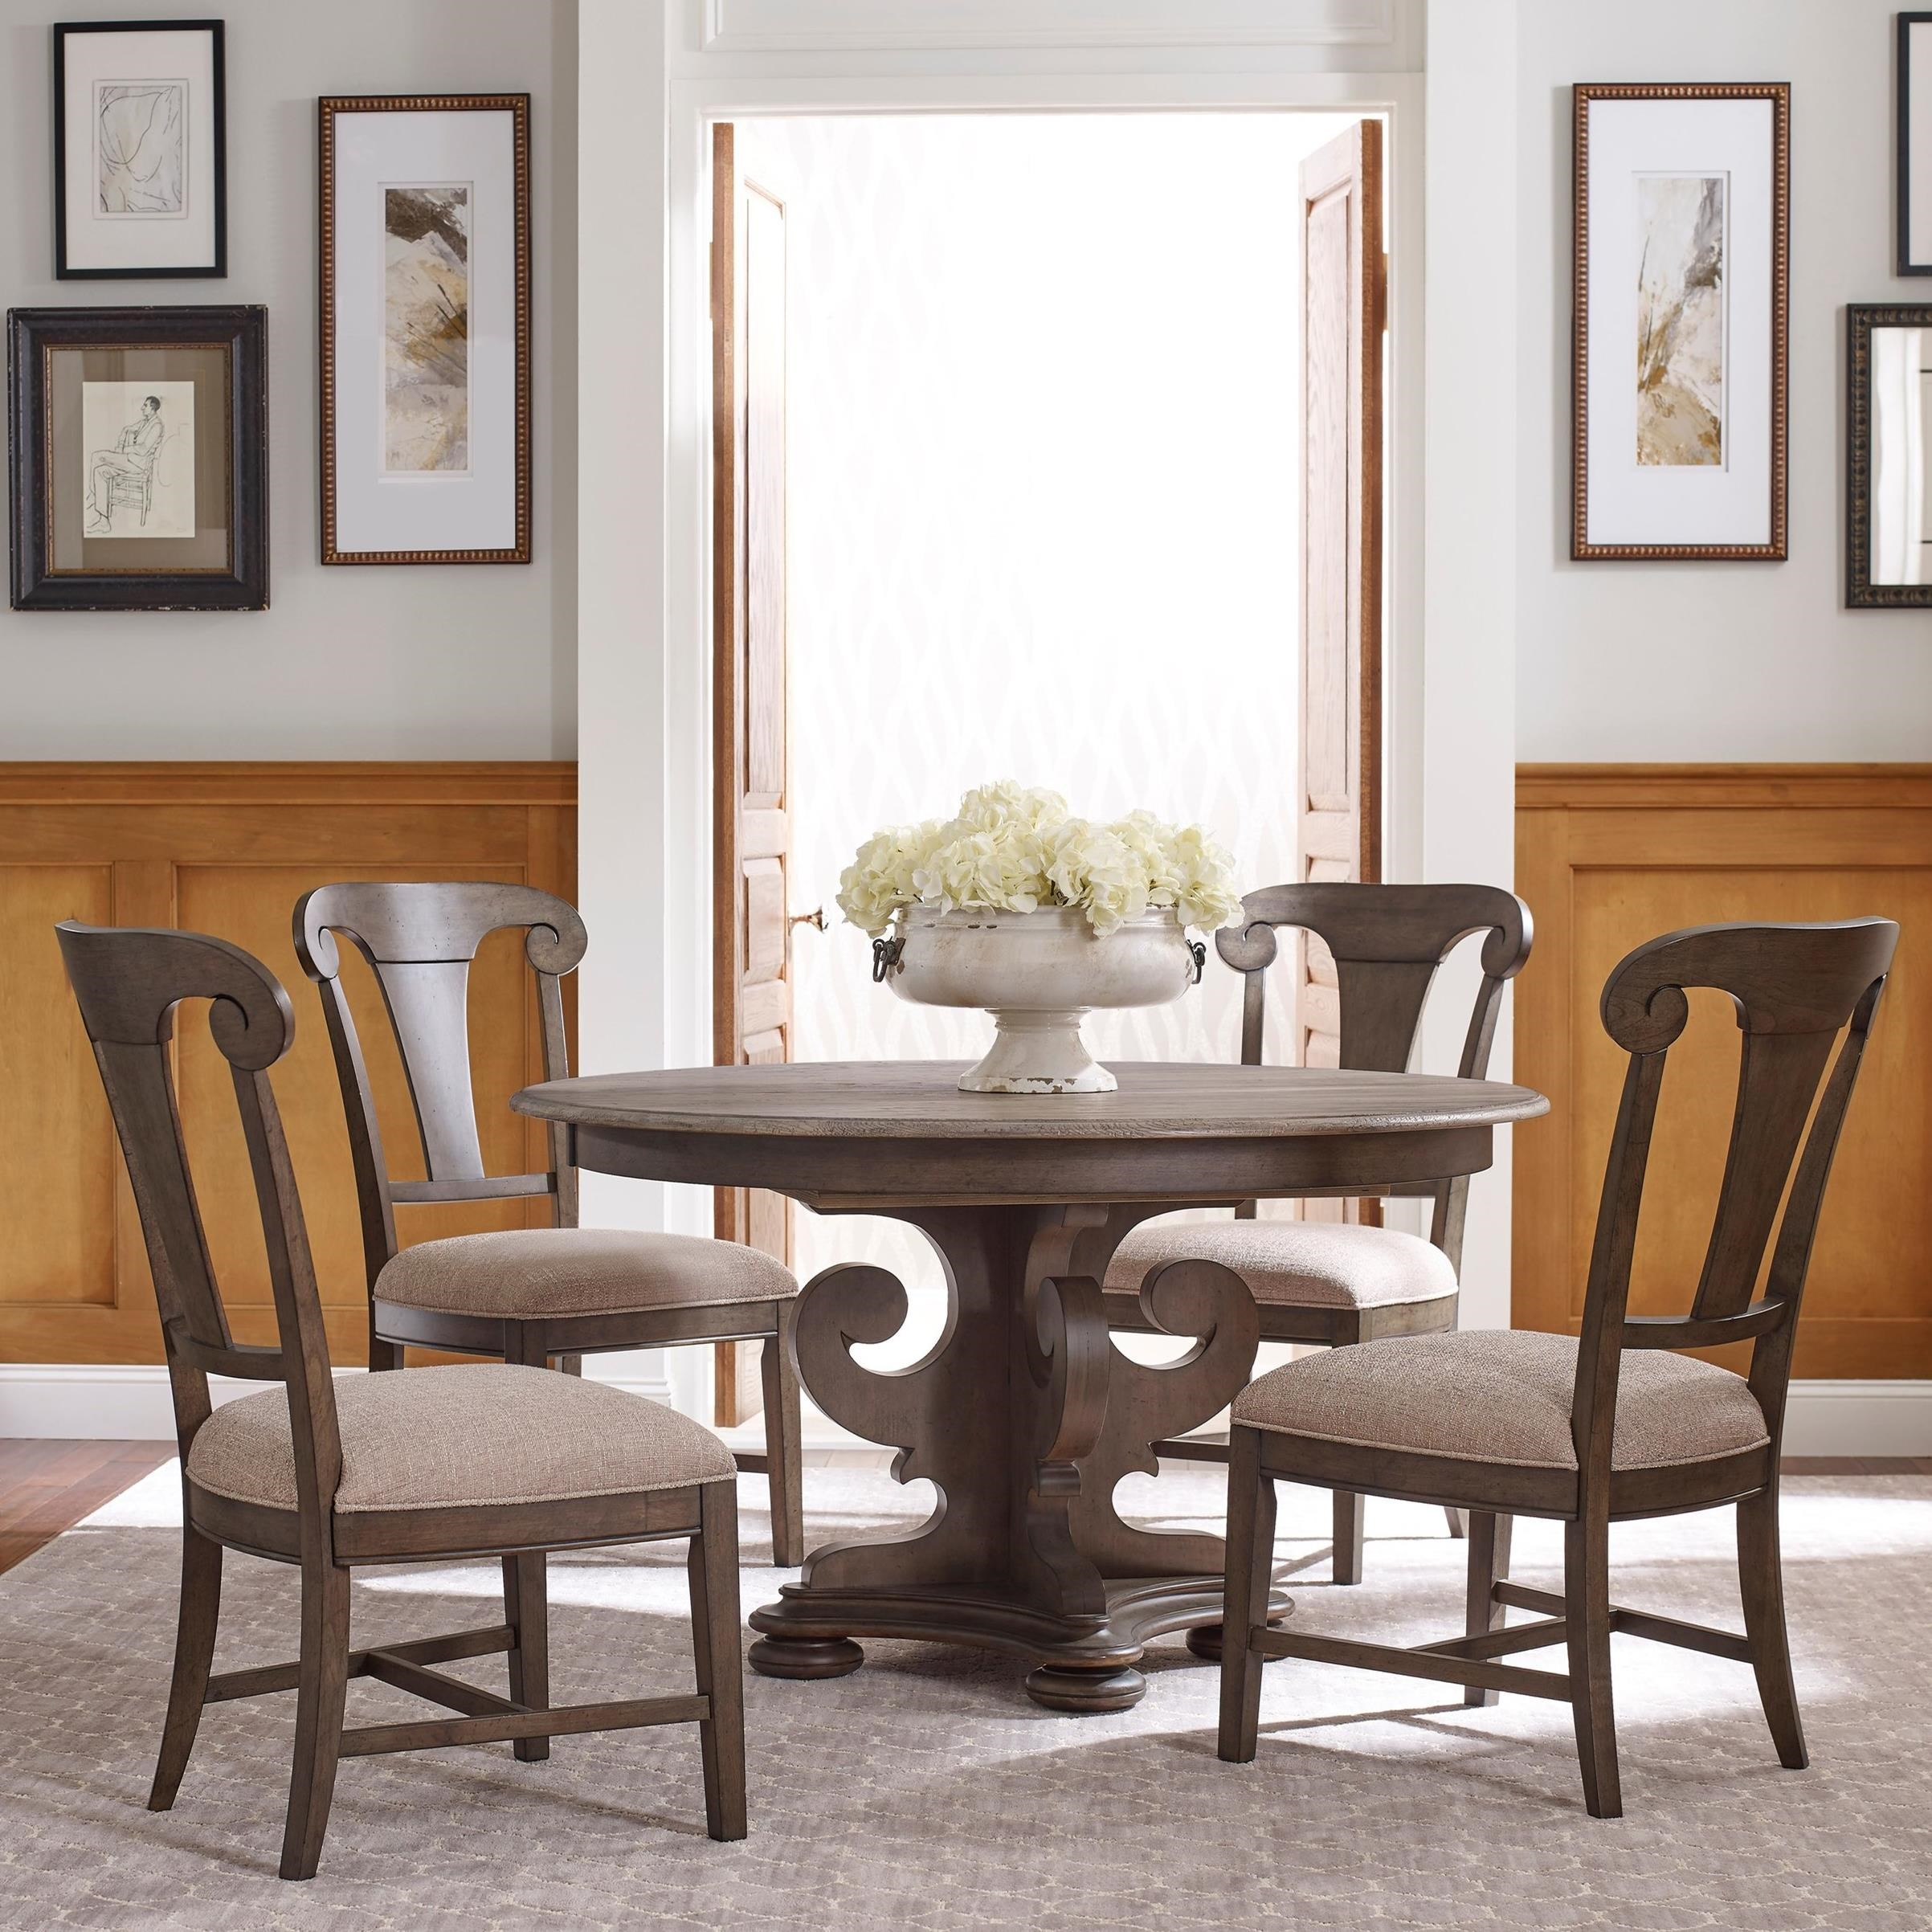 Kincaid Dining Room Set: Kincaid Furniture Greyson Five Piece Dining Set With Grant Round Table And Fulton Side Chairs